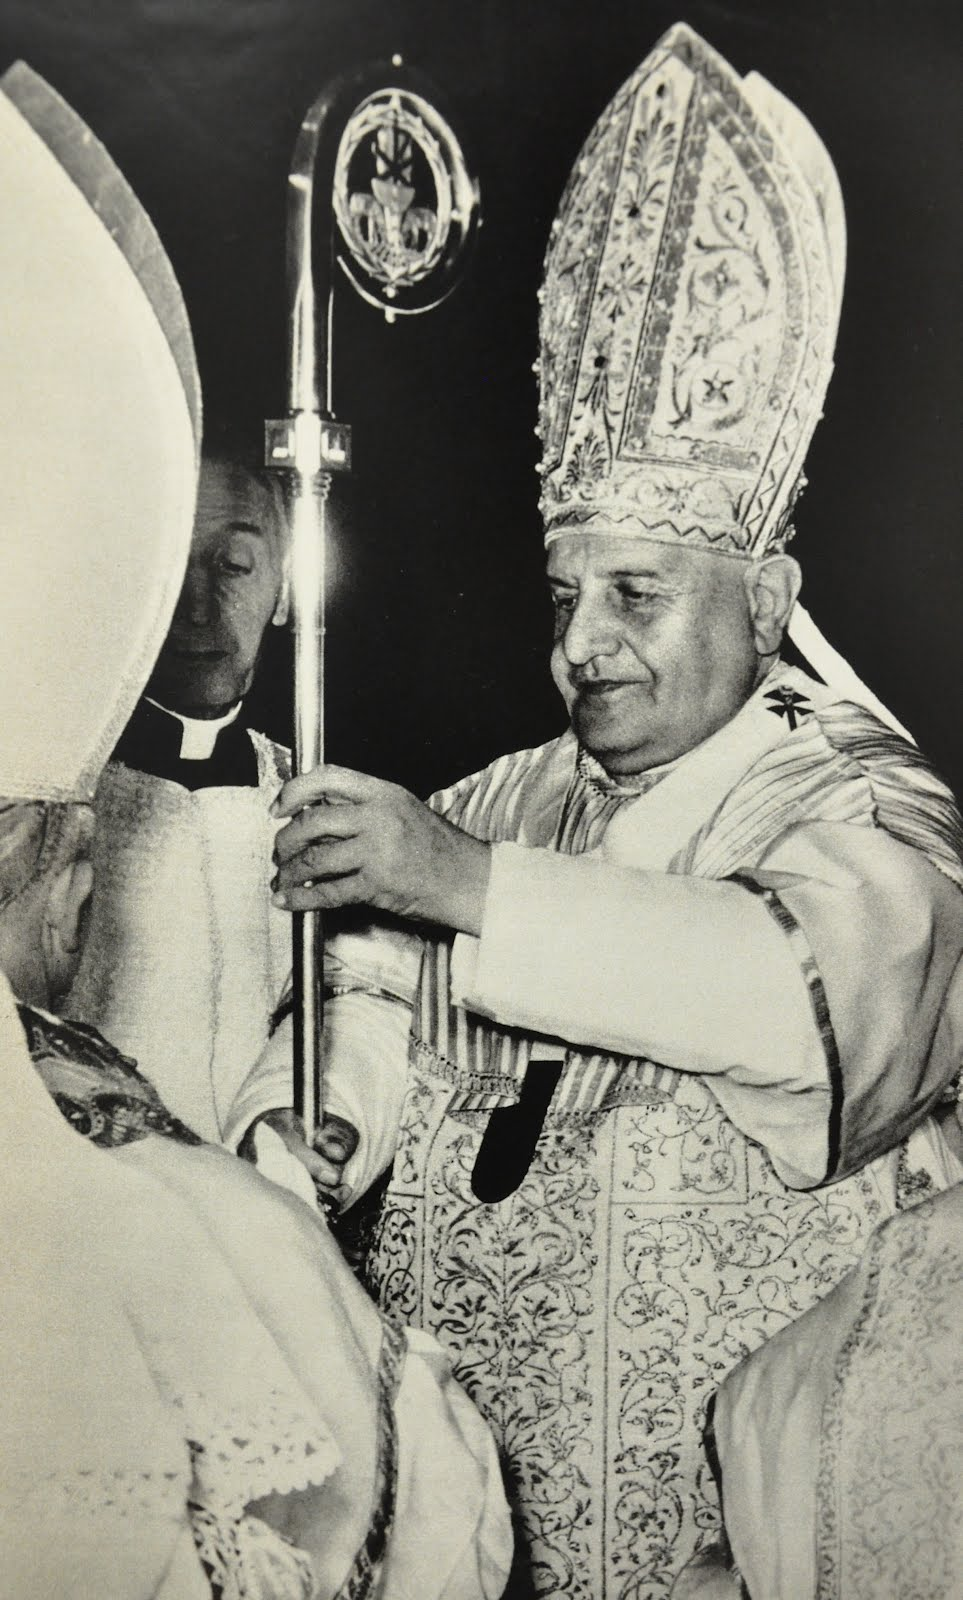 pope john xxiii contribution Saint john xxiii: saint john xxiii, one of the most popular popes of all time (reigned 1958–63), who inaugurated a new era in the history of the roman catholic church by his openness to.